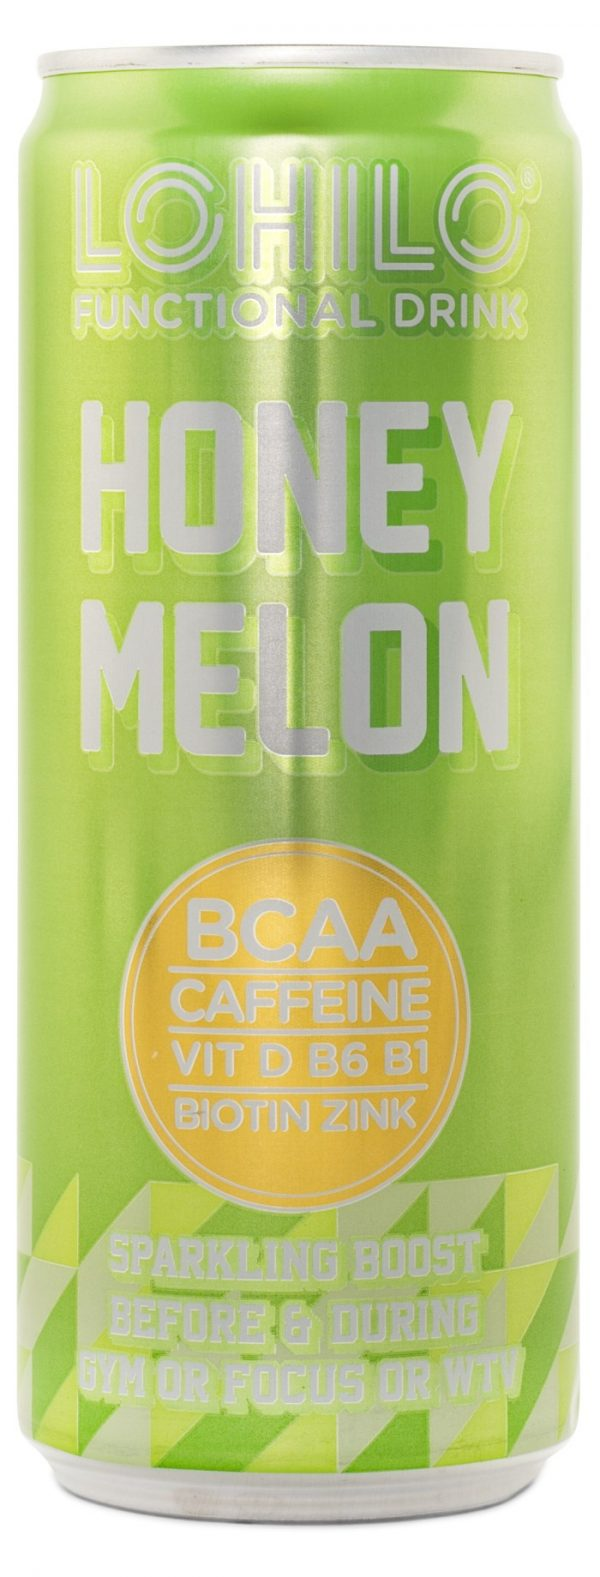 LOHILO HONEY MELON 330ML